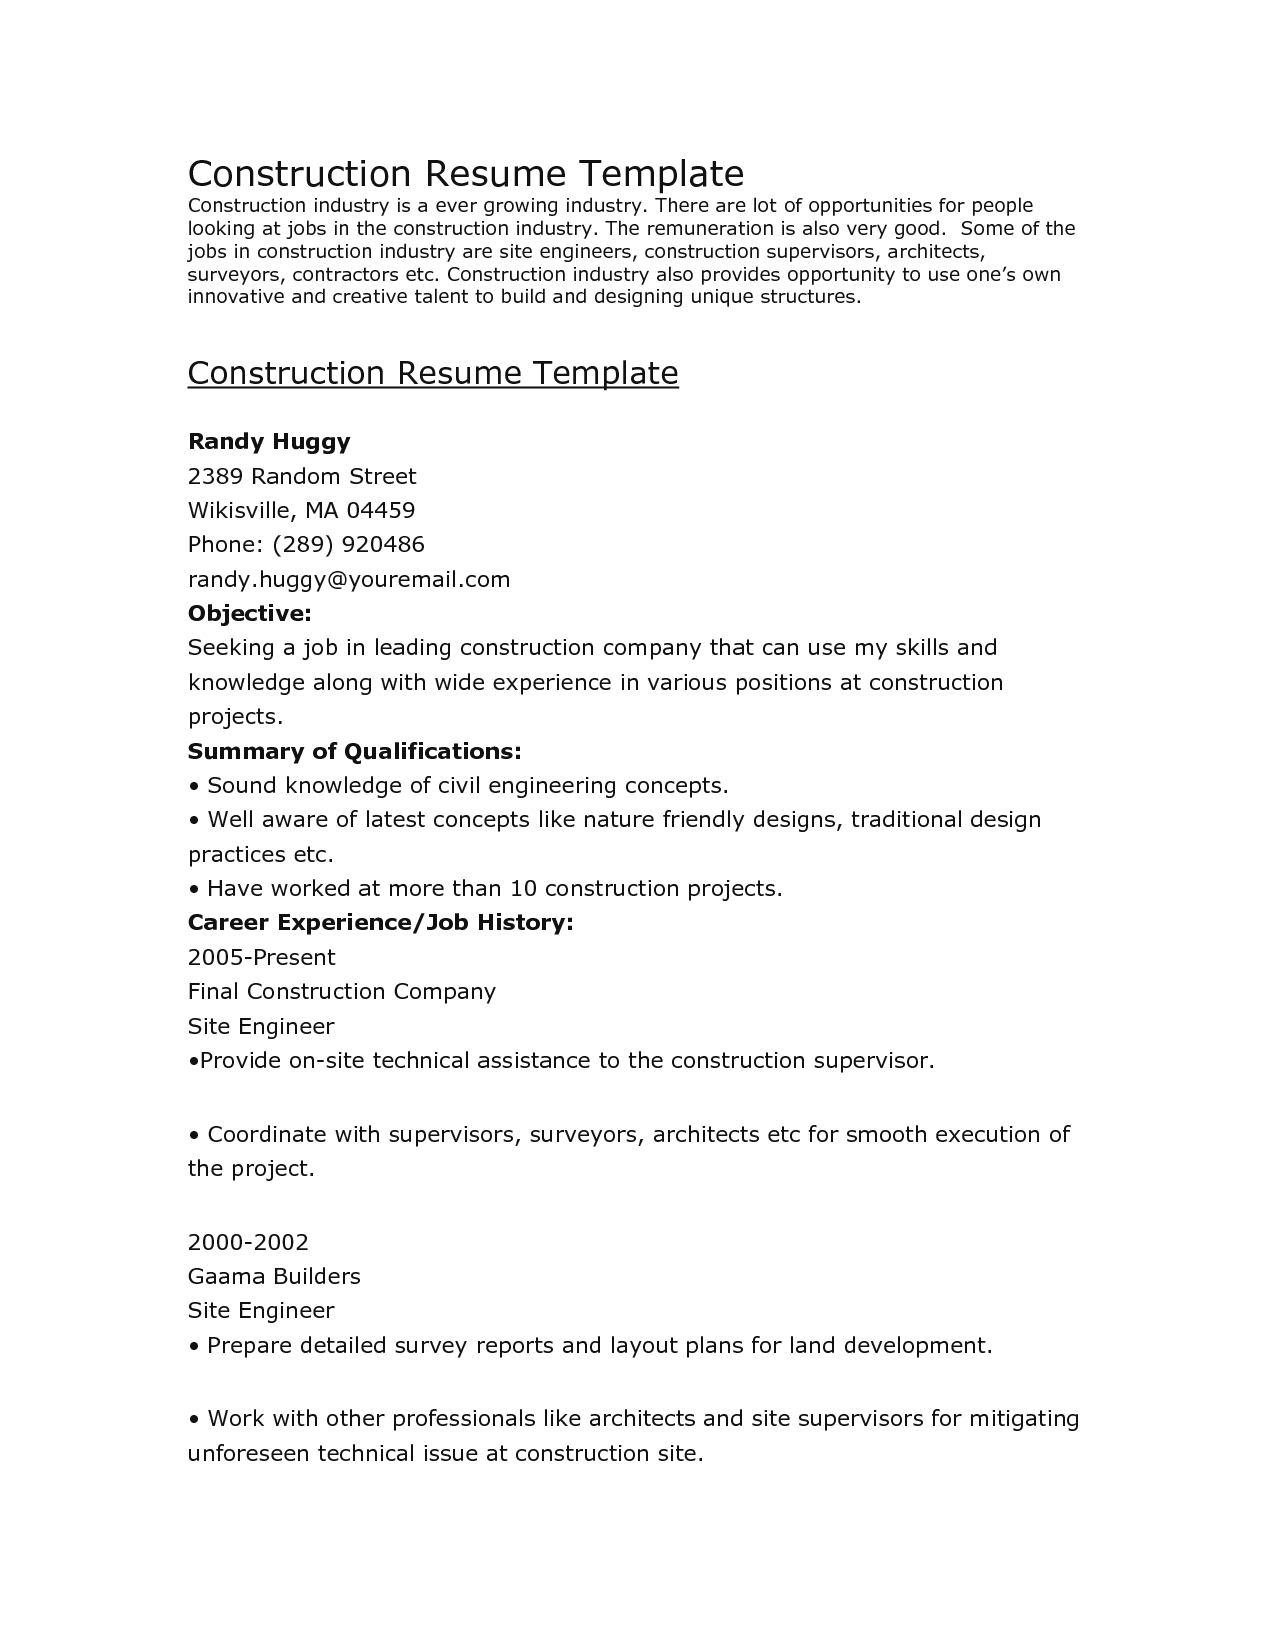 resumes for construction resumes for construction makemoney alex tk